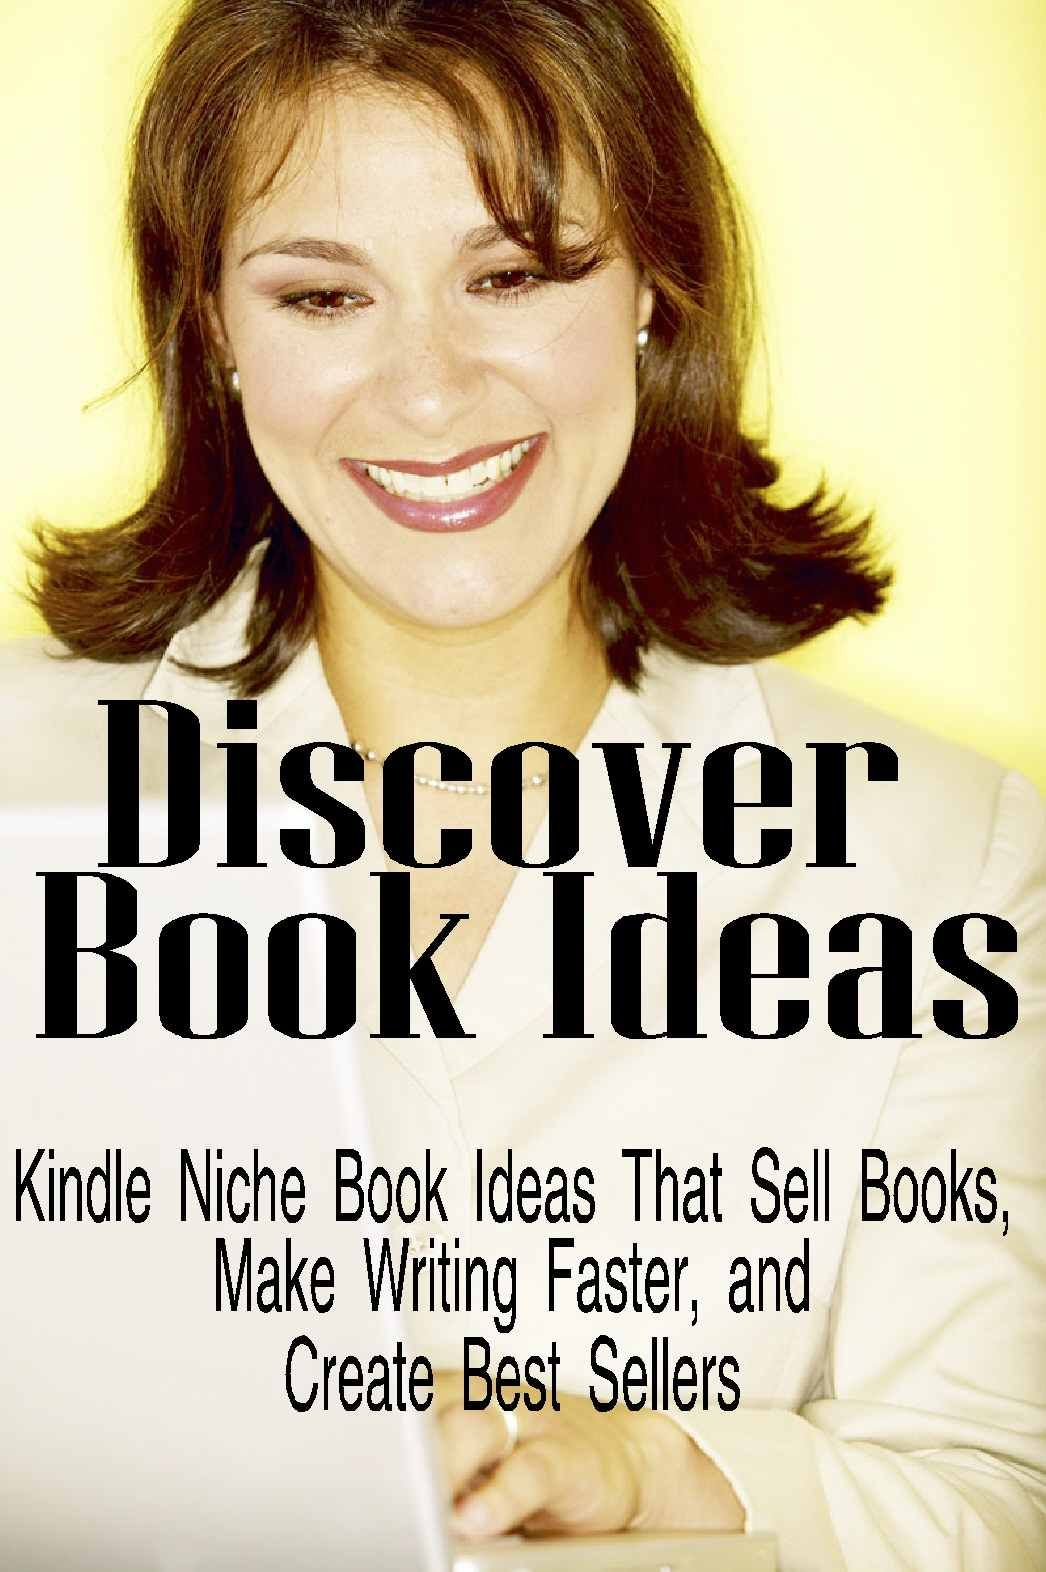 Kindle Niche Book Ideas That Sell Books, Make Writing